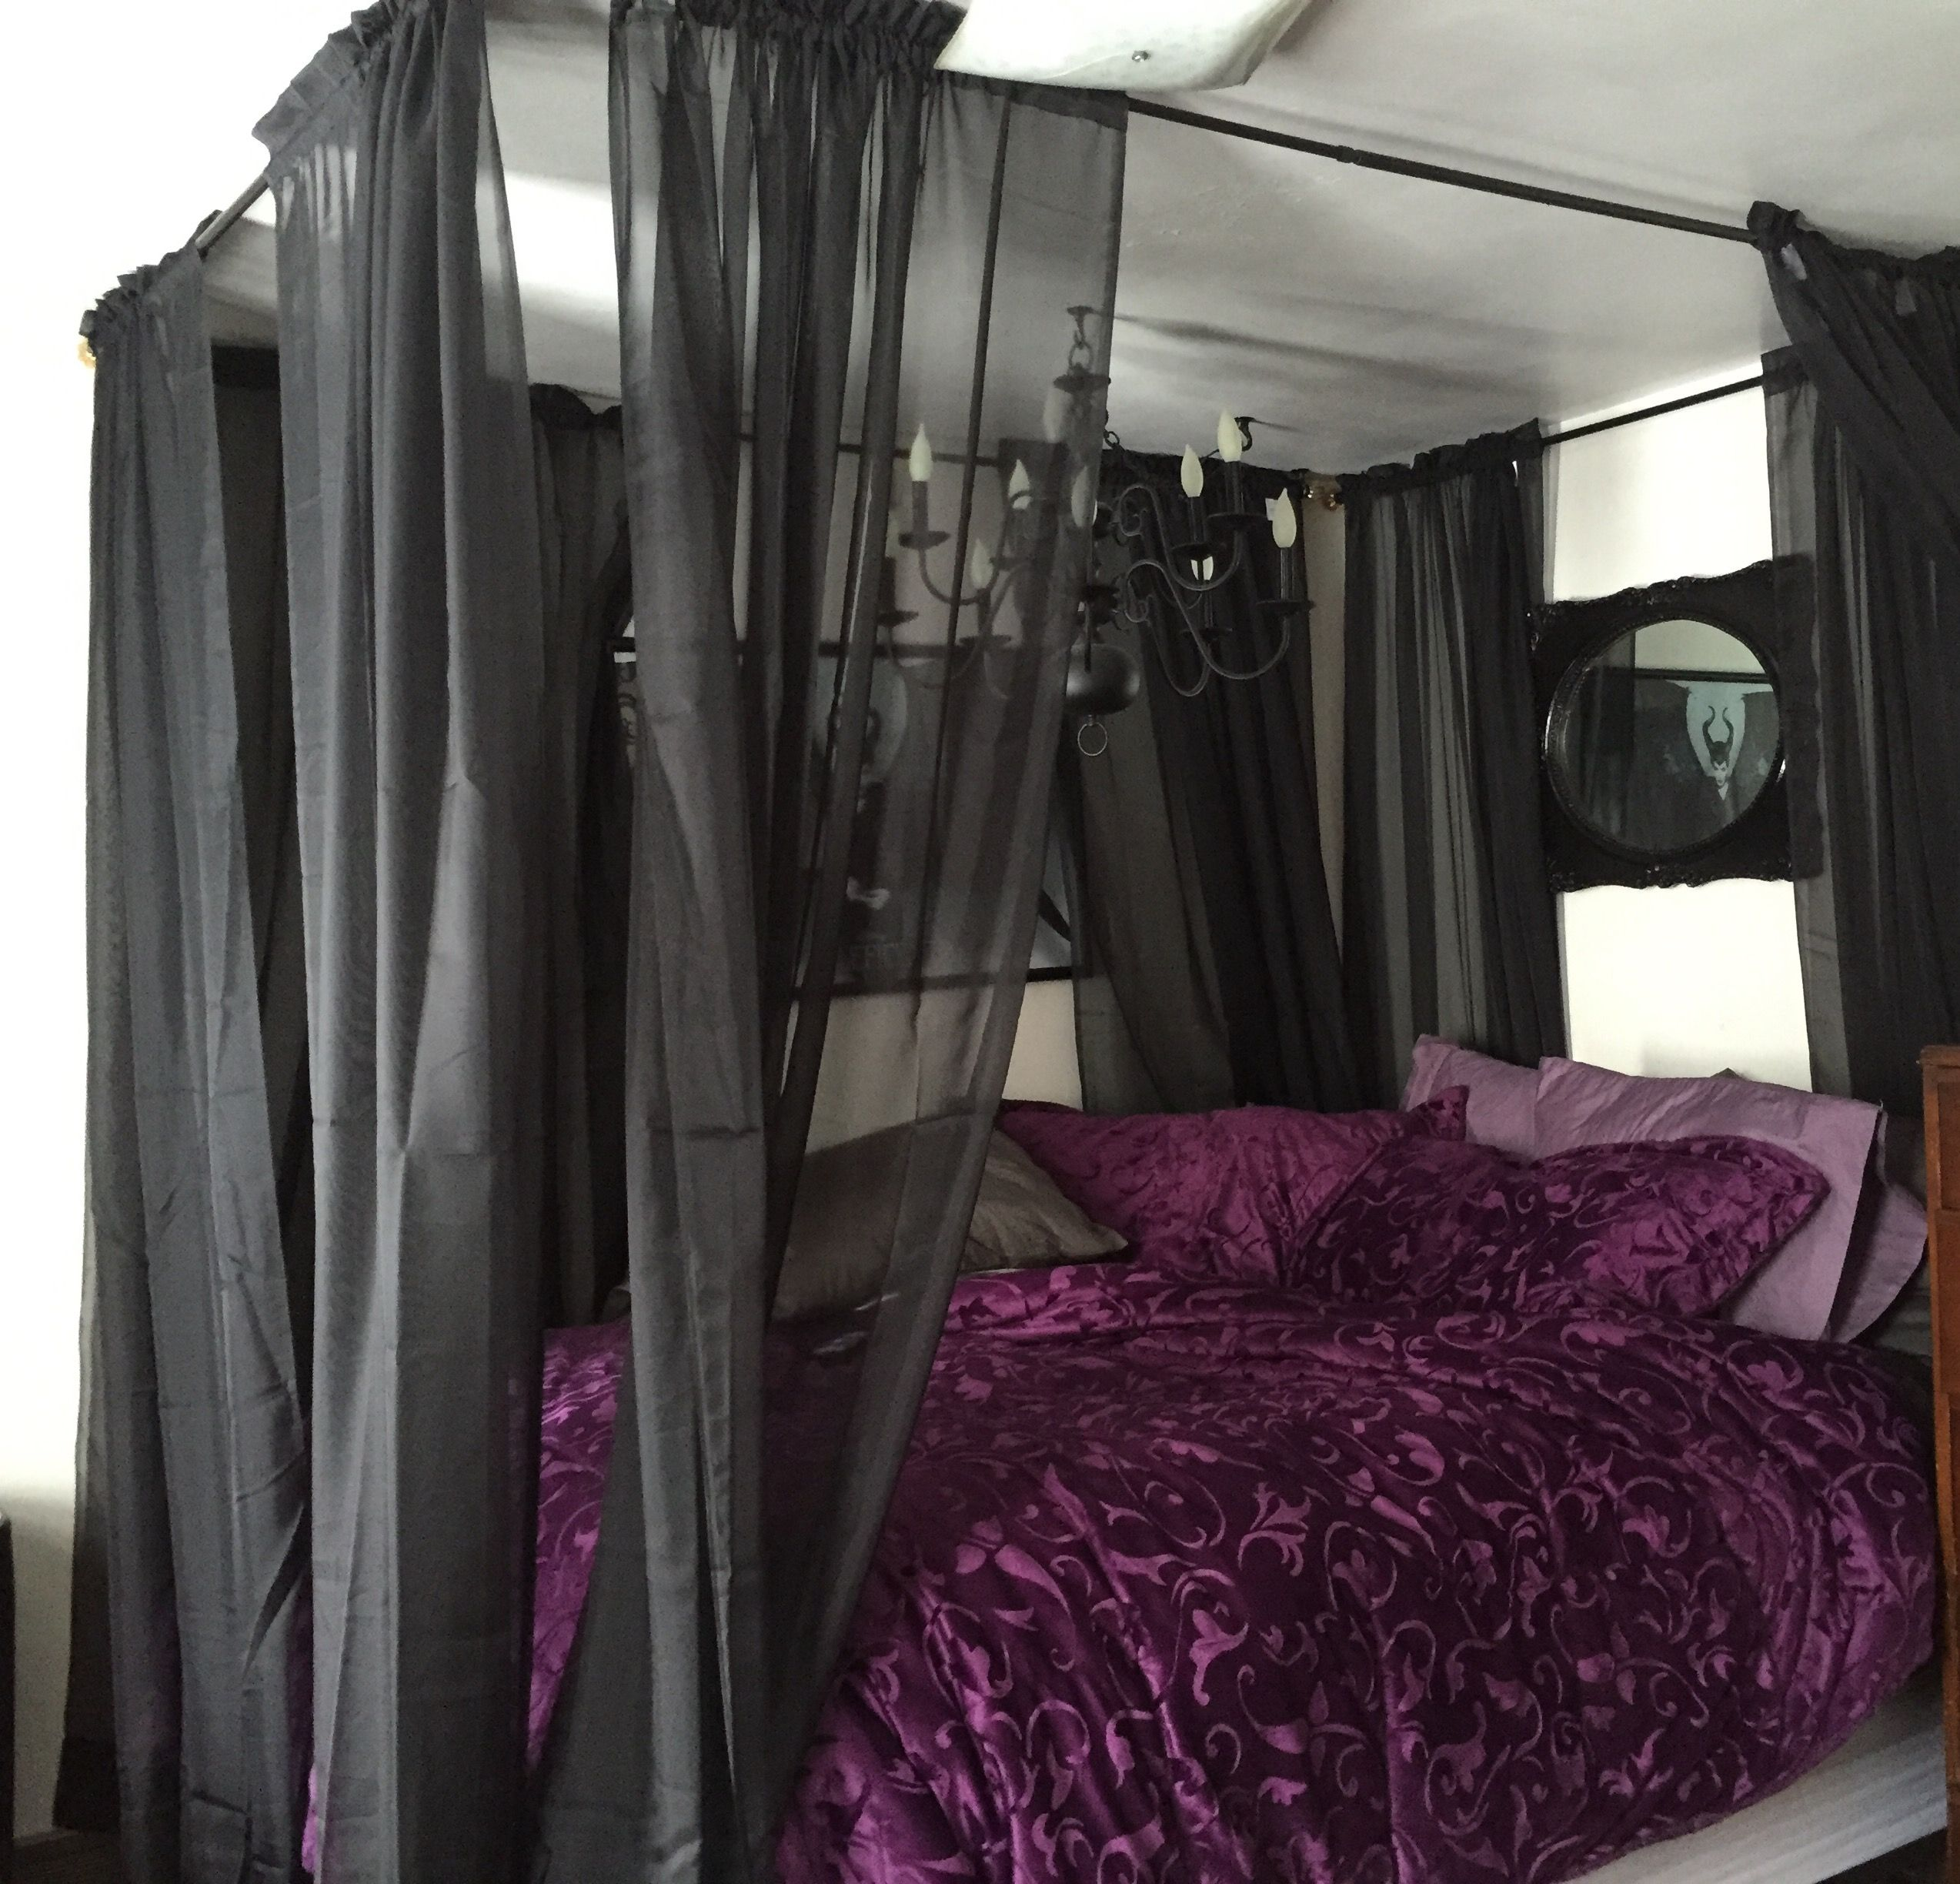 My Bed After I Hung The Homemade Canopy And Sheer Curtains On The